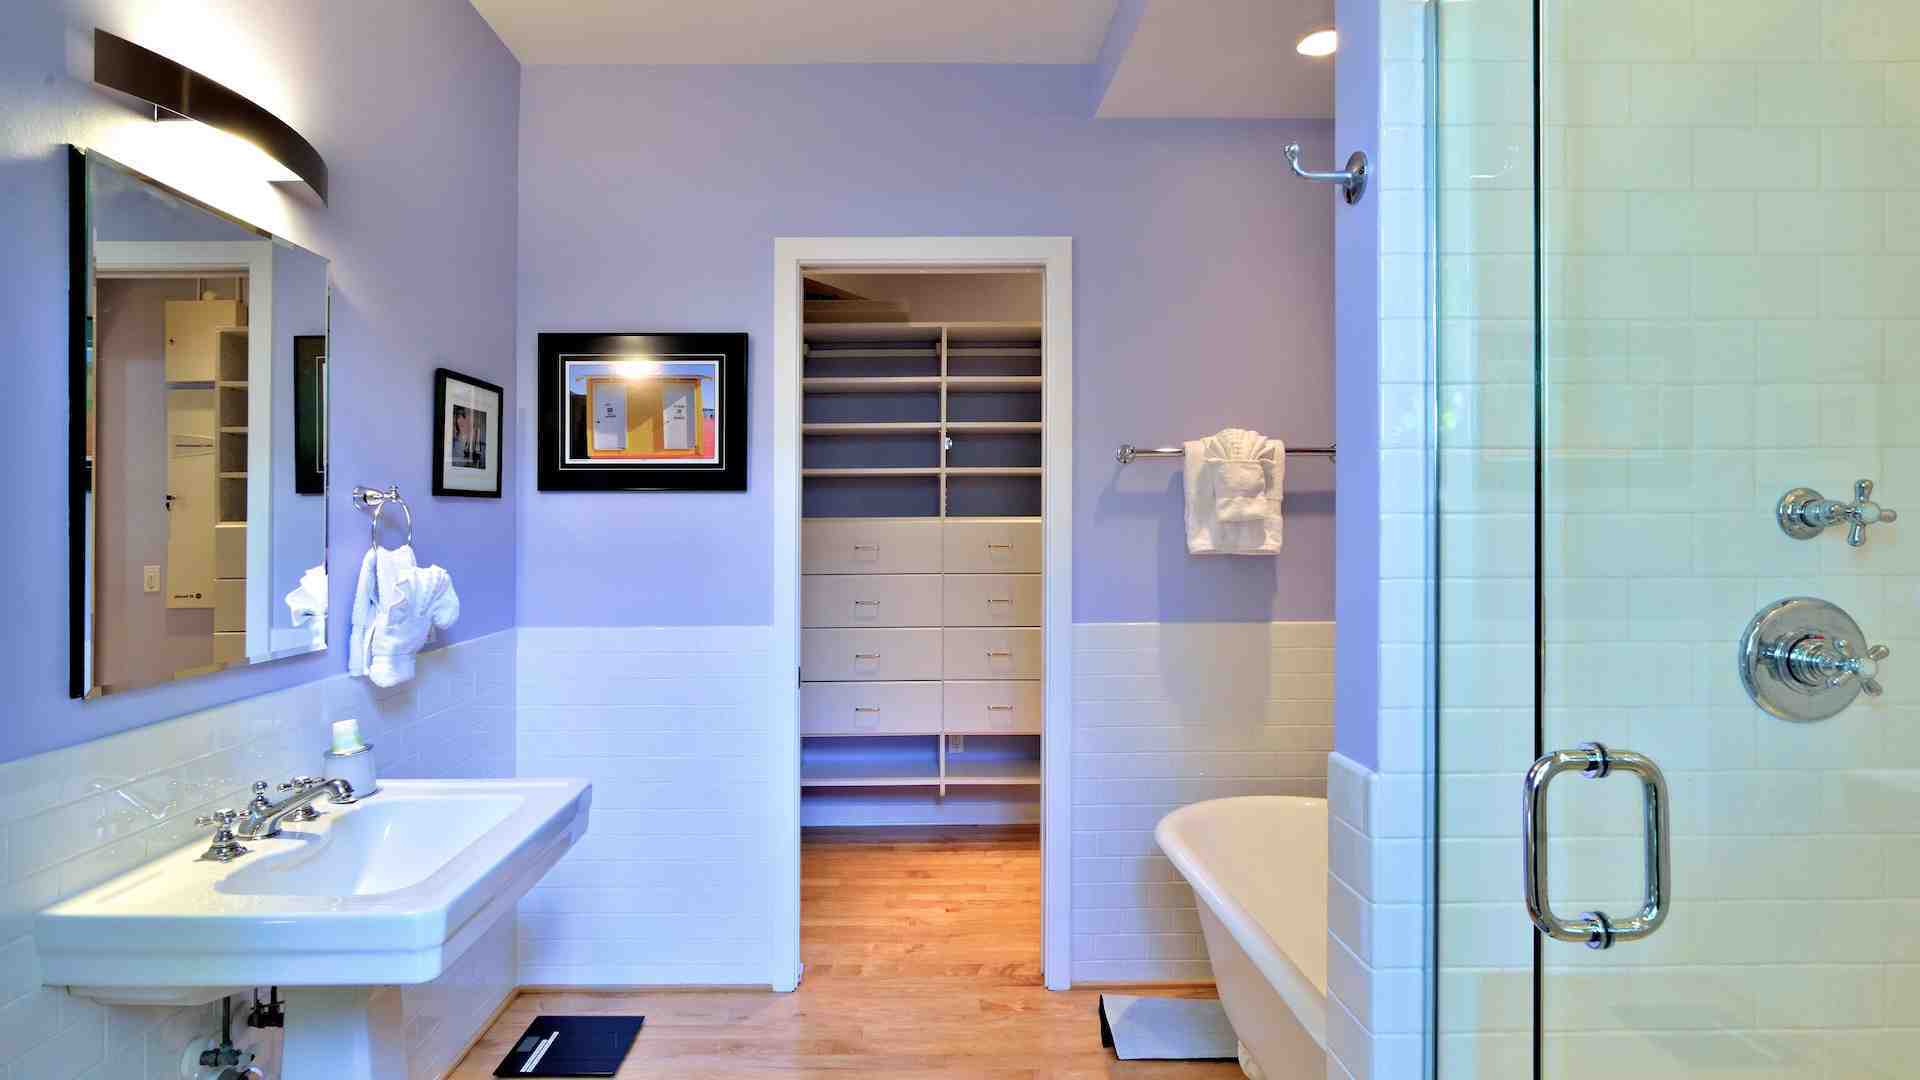 The master bathroom is en suite with clawfoot tub & large frameless glass shower...